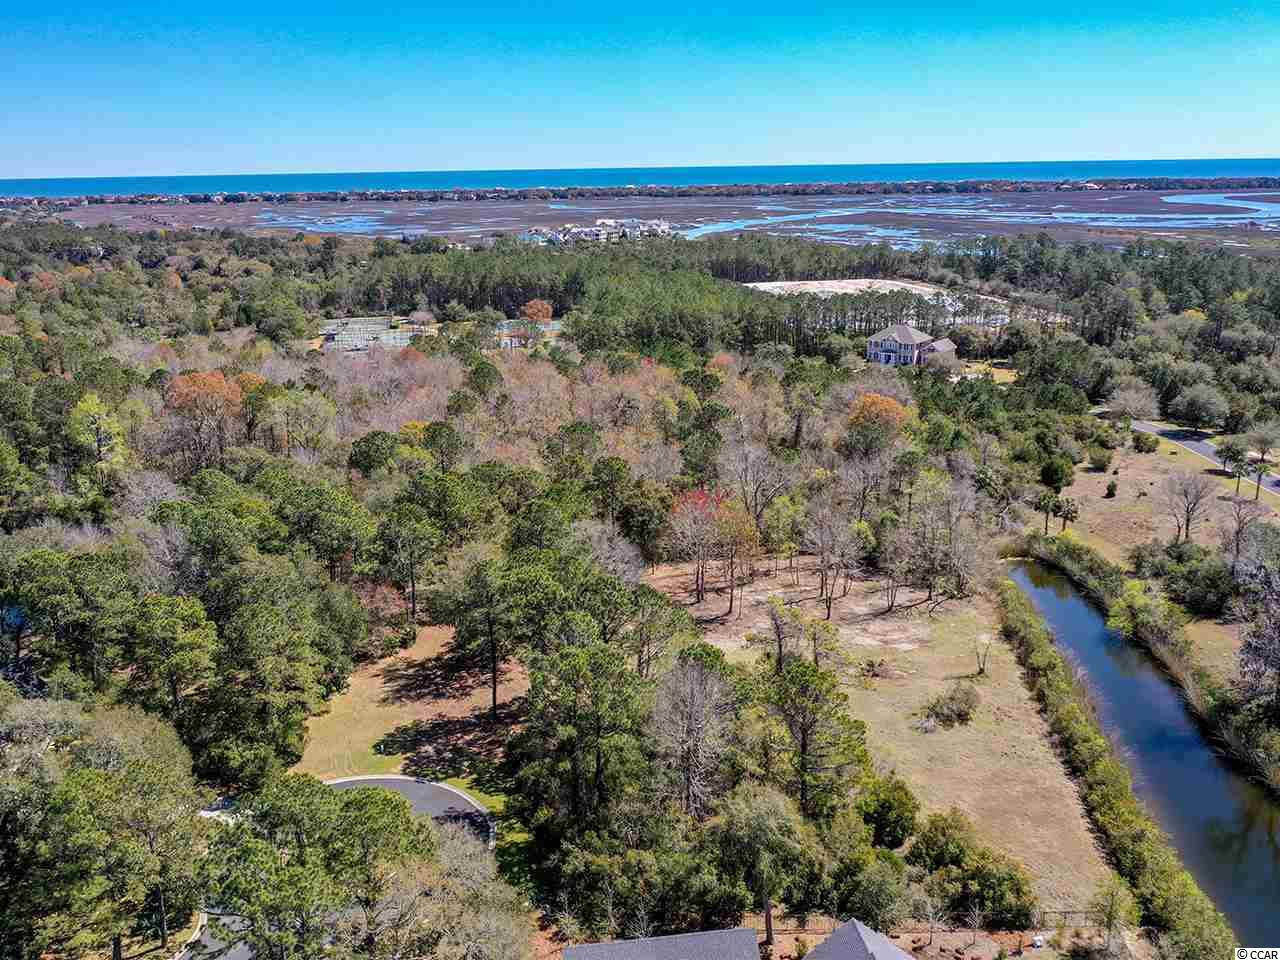 Located in prestigious Debordieu Colony, this wooded lot providing over an acre of privacy on a cul-de-sac may be the perfect location for your dream home.  Recently cleared, it is in close proximity to the Tennis and Fitness centers as well as the Community Boat Landing.  Other amenities of DeBordieu Colony, a private 2700 acre community, are only minutes away...Championship Golf, miles of secluded beach, bike paths and walking trails, salt water creeks, two pools with Gazebo Bar as well as fine or casual dining at the Clubhouse and/or Beach Club. Drive time from the security gate to the 6000' runway at Georgetown County Airport is approximately 20 minutes.  Historic Charleston and Myrtle Beach are about an hour's drive south and north respectively.